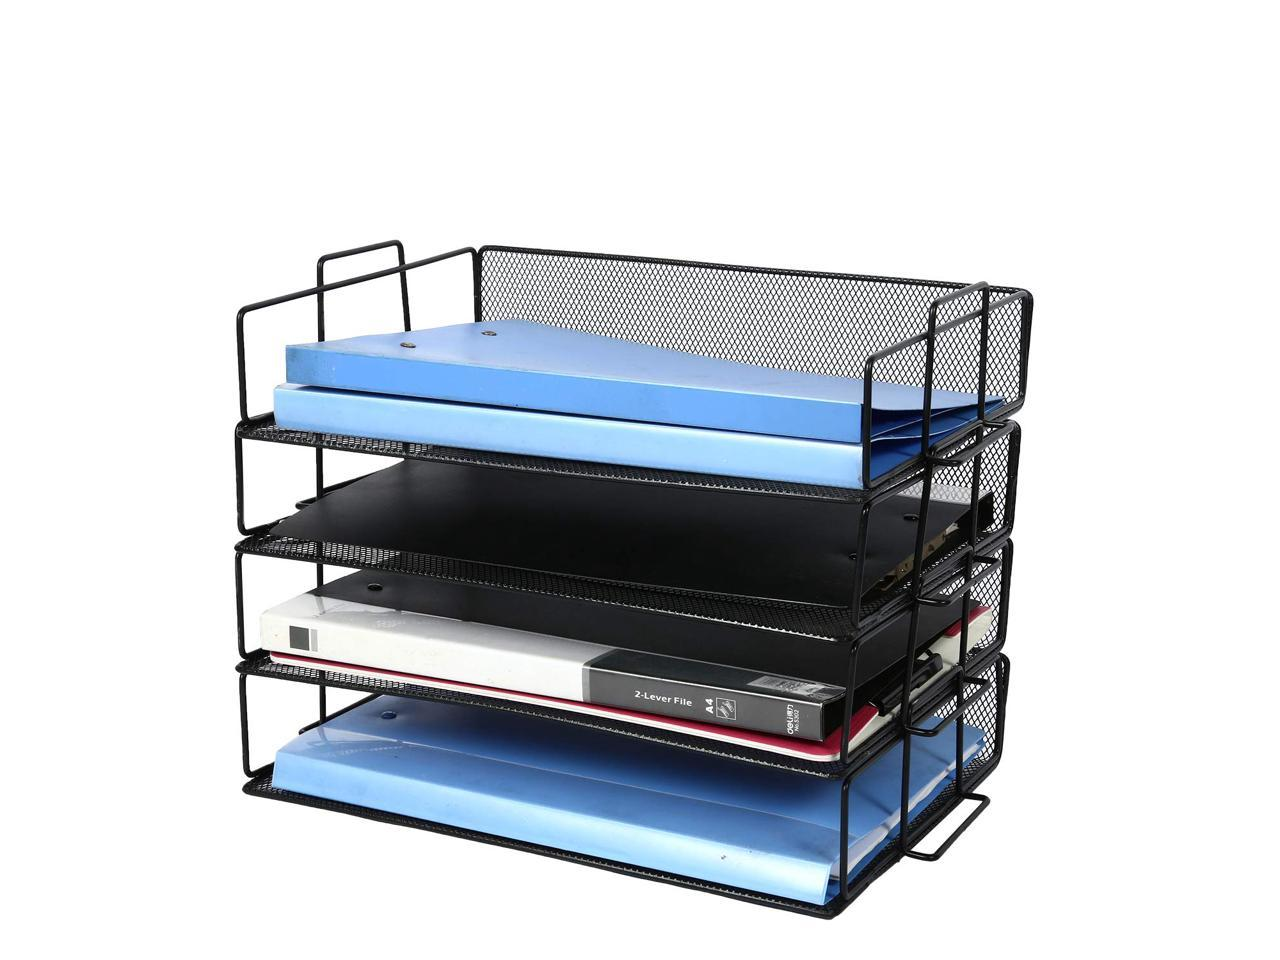 CLATINA 4-Tier Metal Mesh File Rack  Letter Tray Paper Document Holder Office